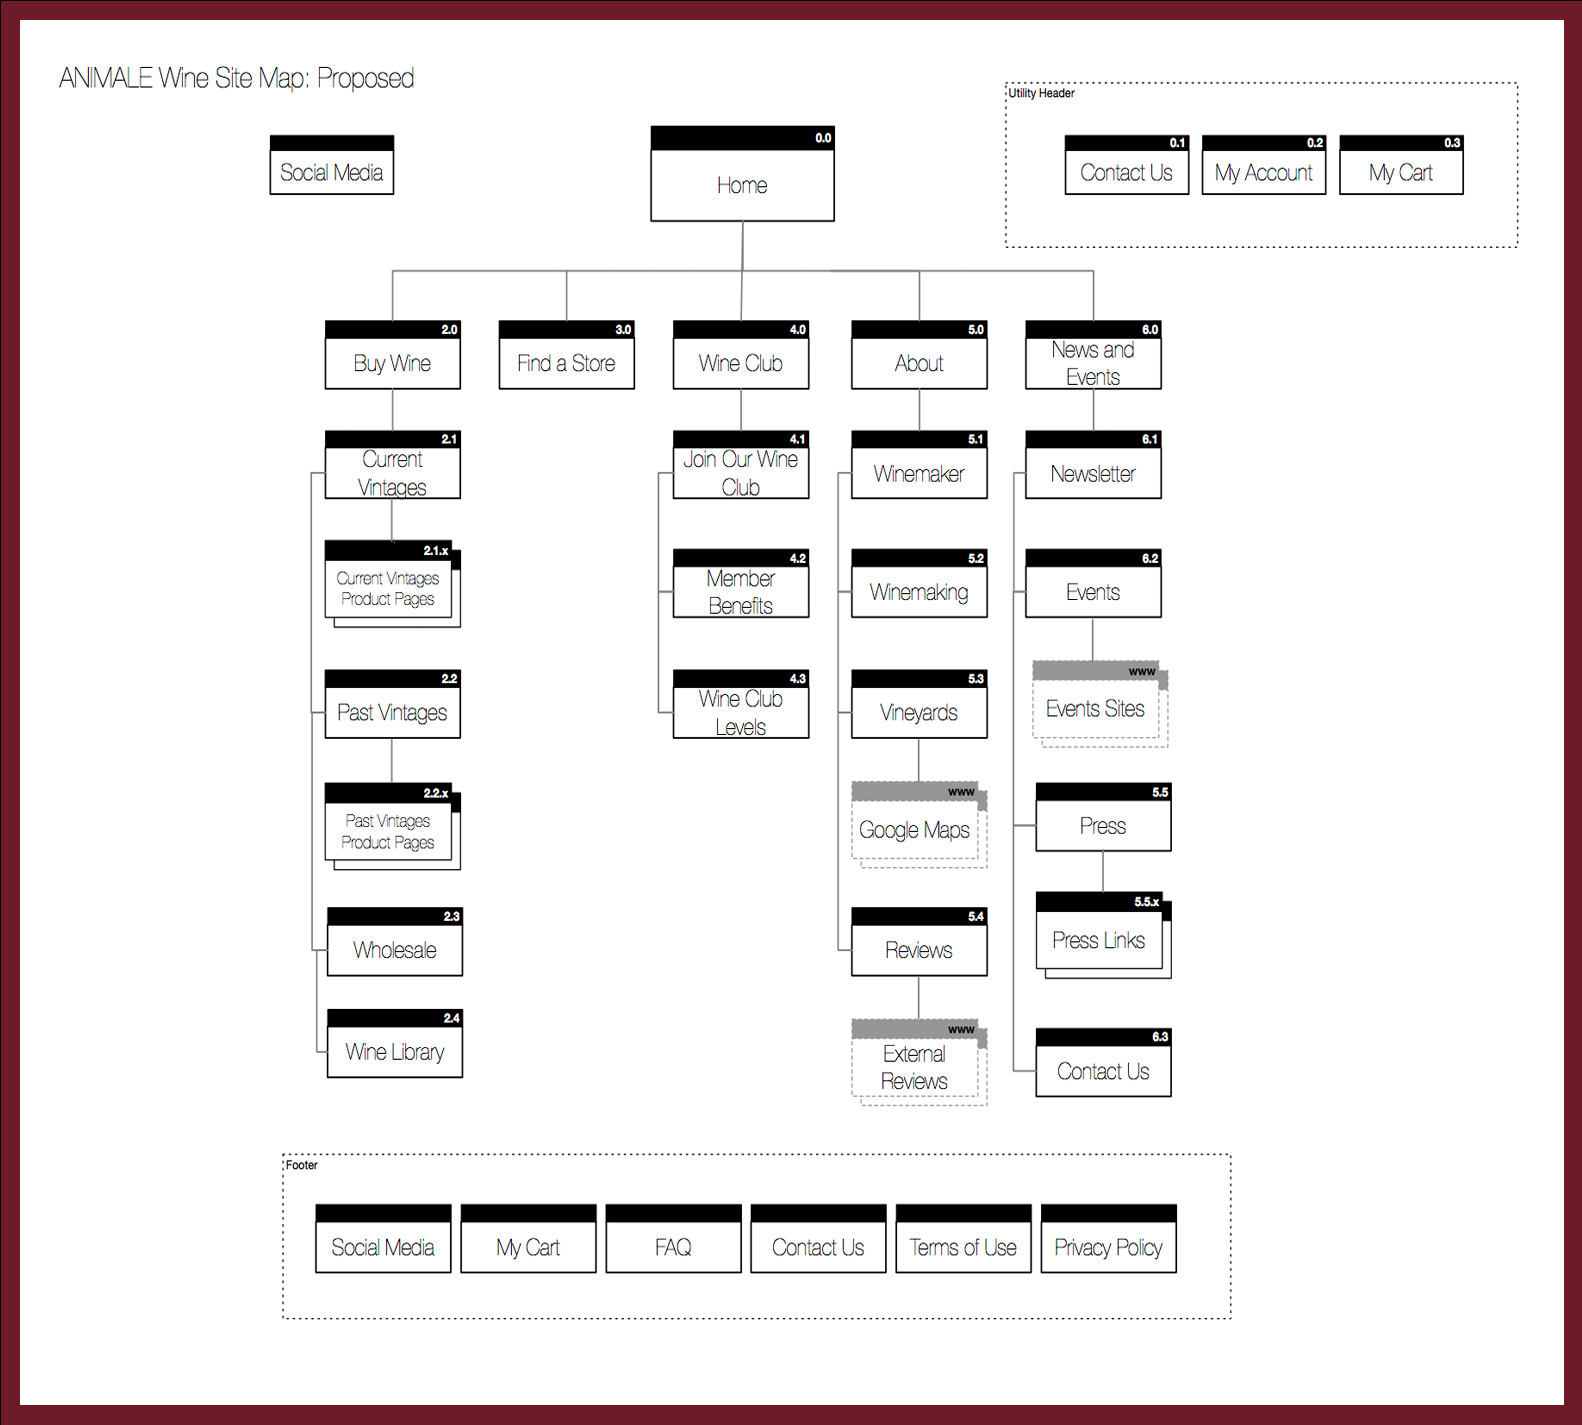 The site map I created of the proposed ANIMALE Wine website.